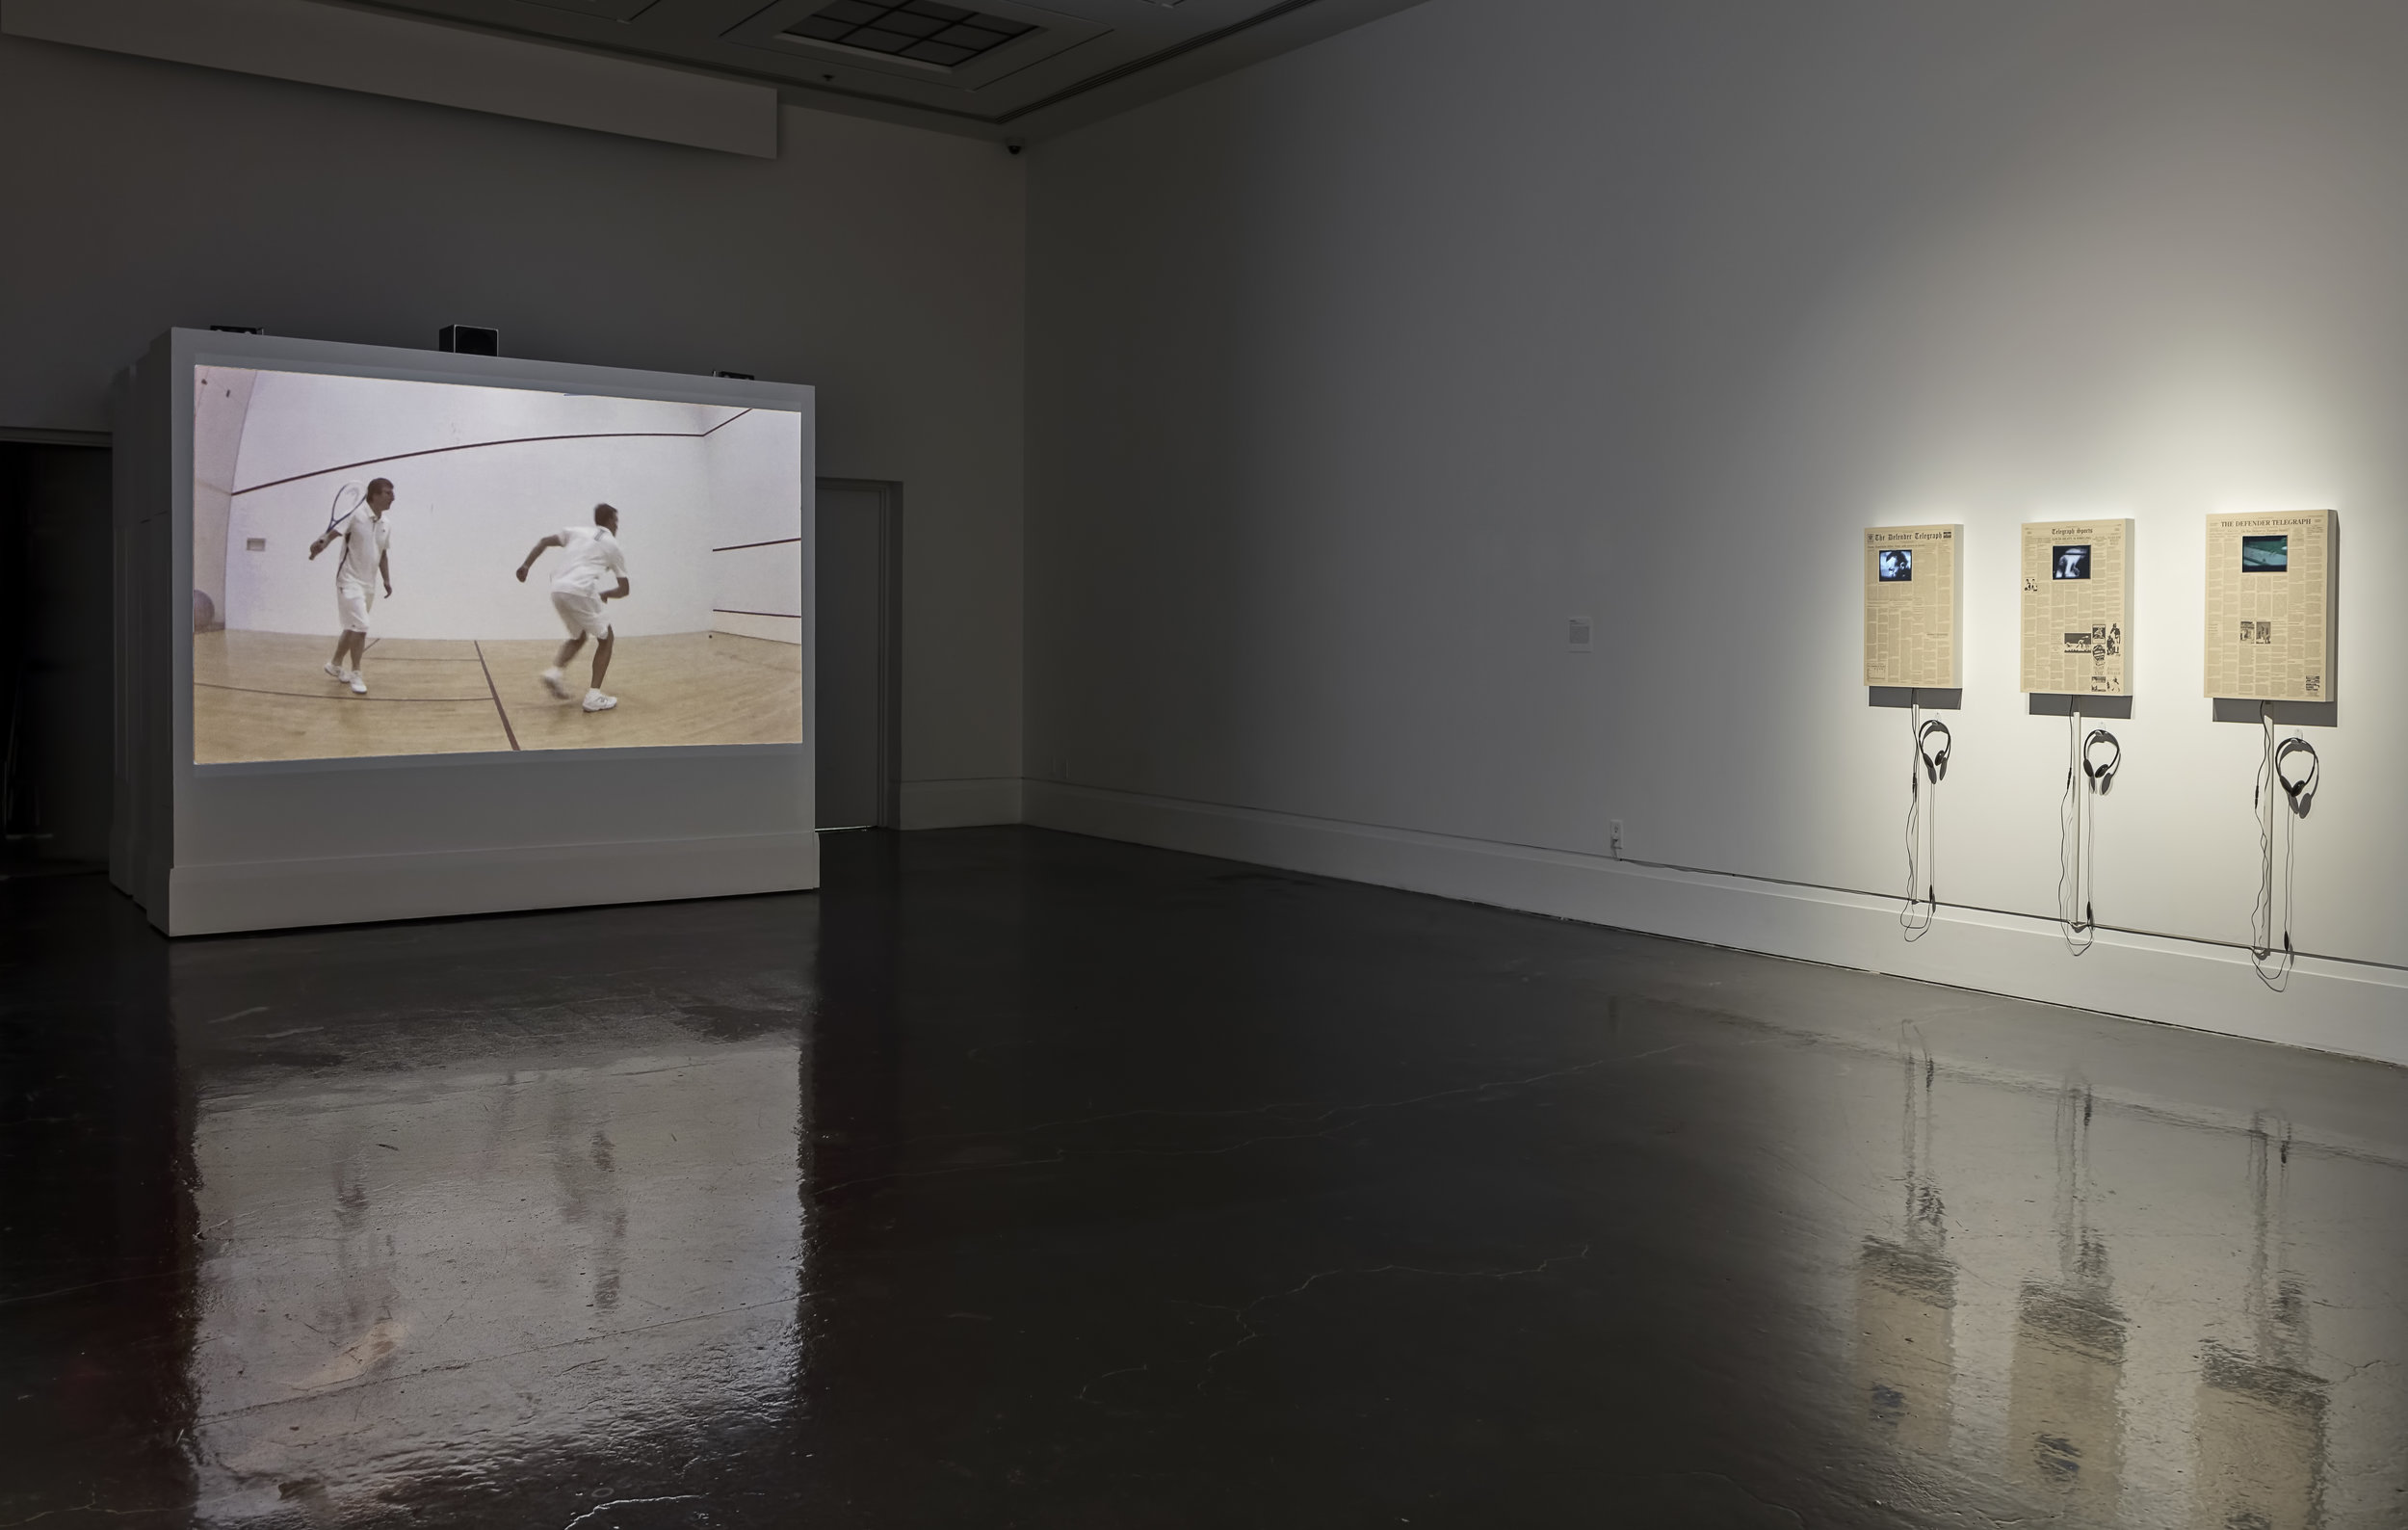 Be A Sport , Robert Freeman Gallery, Art Gallery of Mississauga. Left: JEFF&GORDON,  How You Play the Game , 2011, Single channel projection. Right: Mark Losier, The Defender Telegraph Series, 2010, Newsprint, matte board, wood frame, video monitor. Photo by Toni Hafkenscheid.